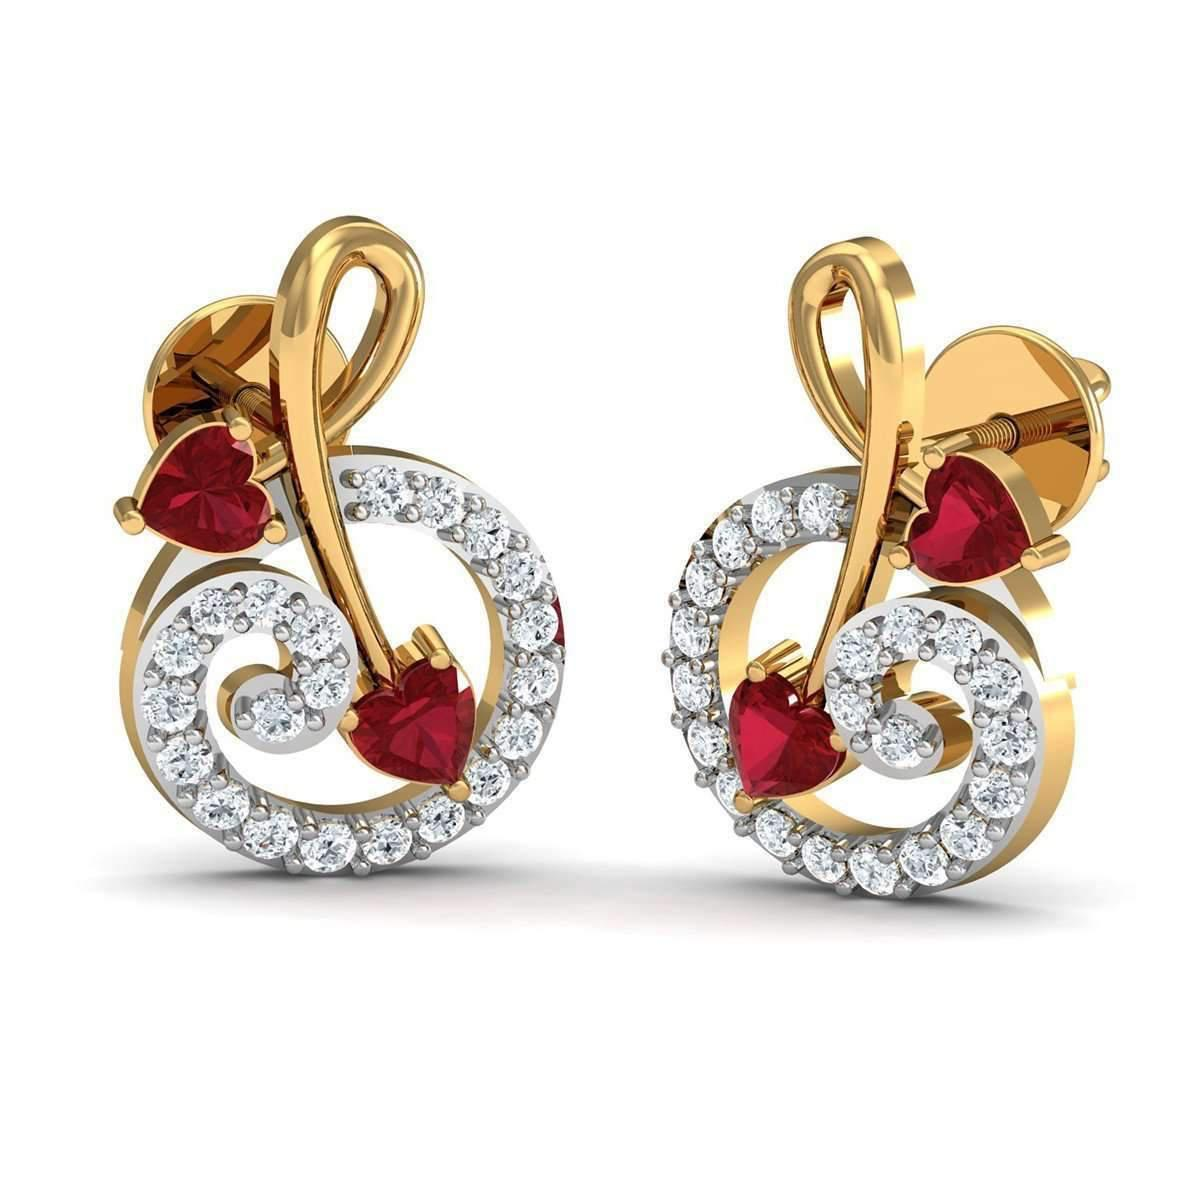 Diamoire Jewels Heart Shaped Ruby and Diamonds Pave 18kt Yellow Gold Earrings T54cqKXc